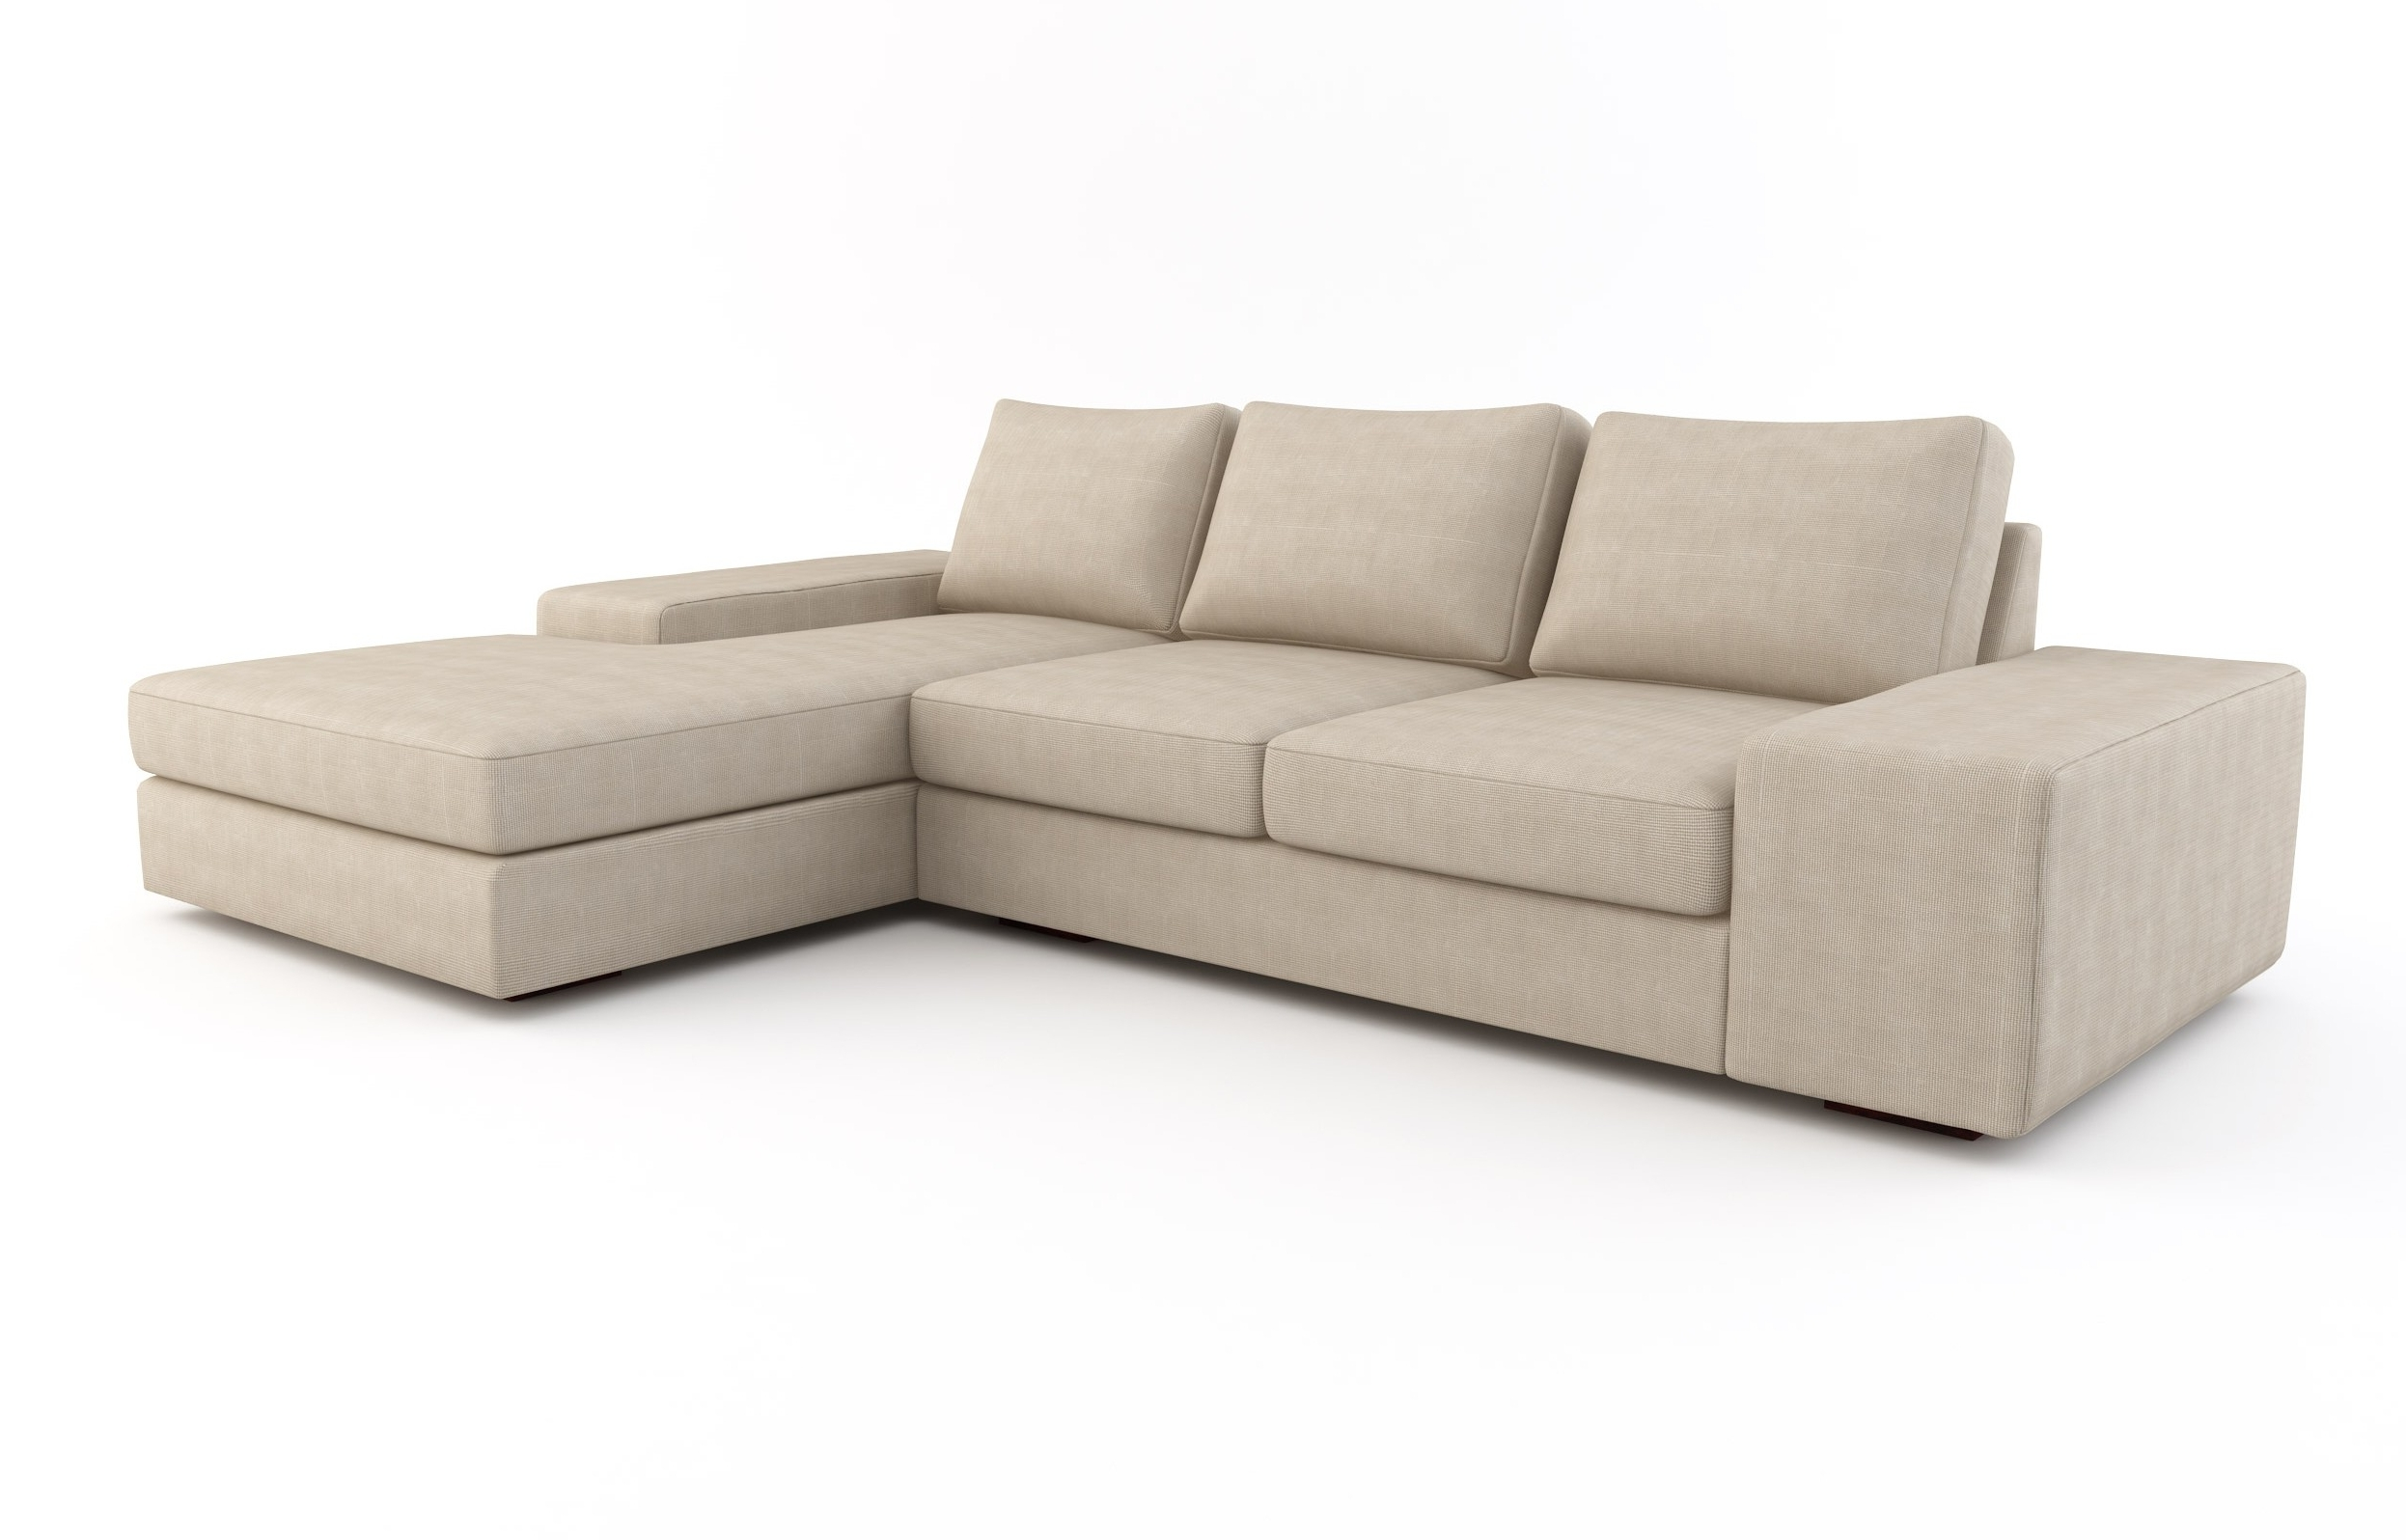 2018 Strata Chaise Sectional W/ Sofa Bed (View 2 of 15)